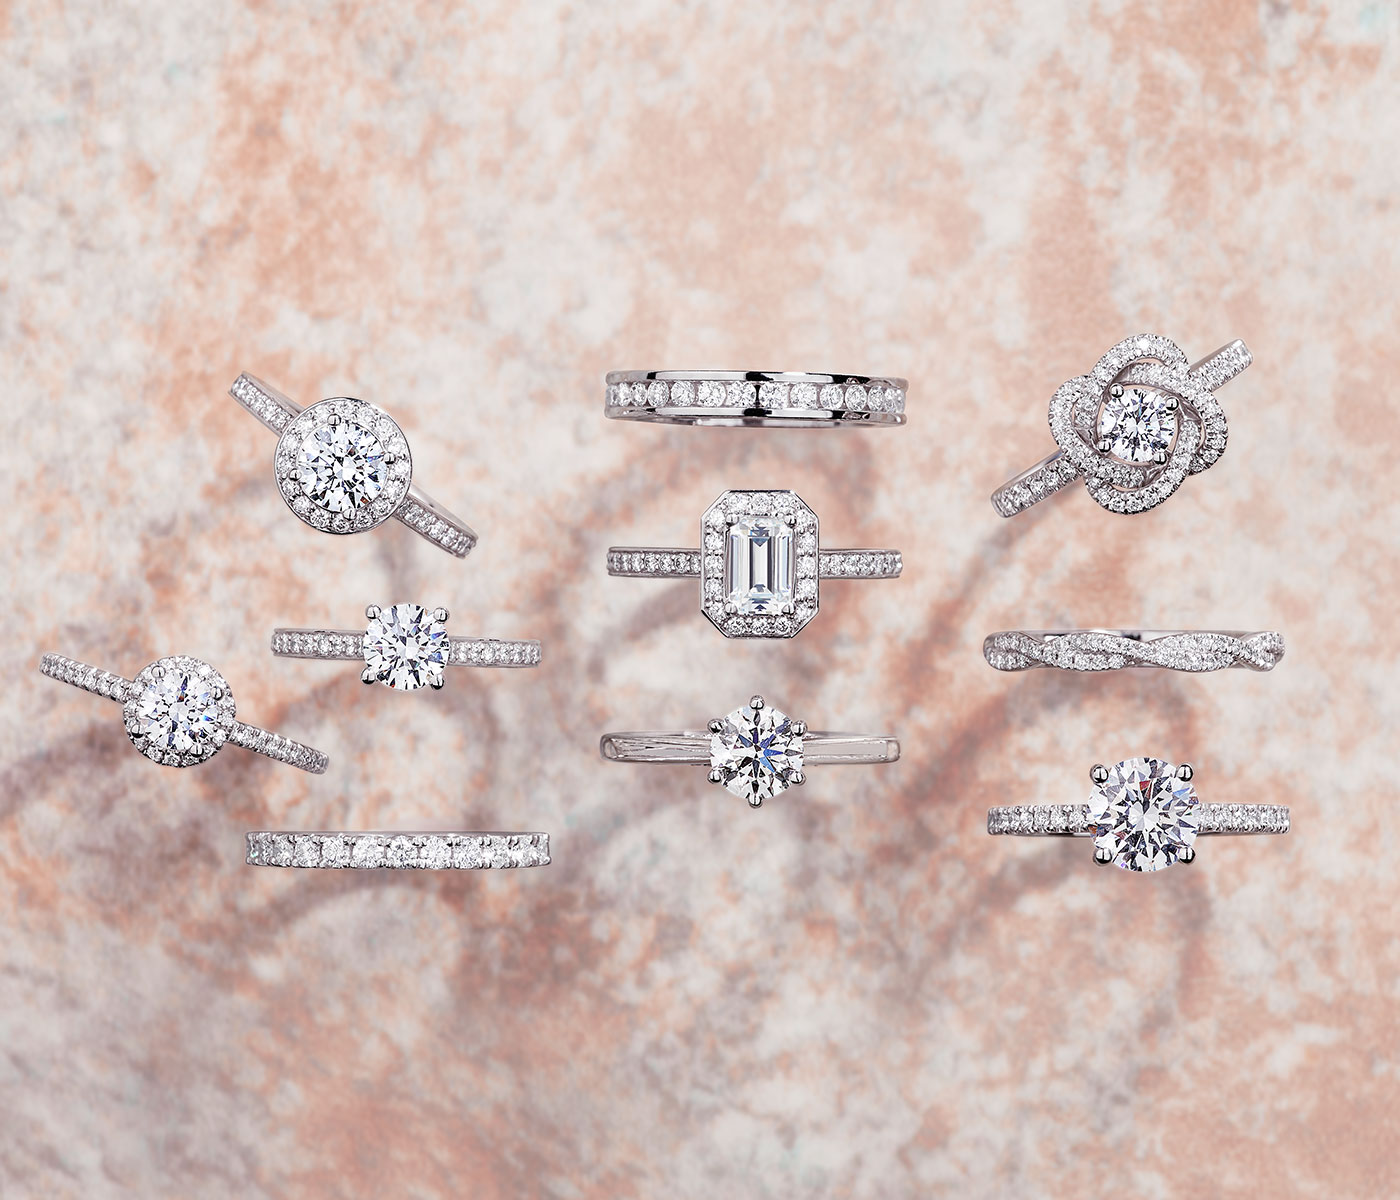 What are the most popular diamond shapes?